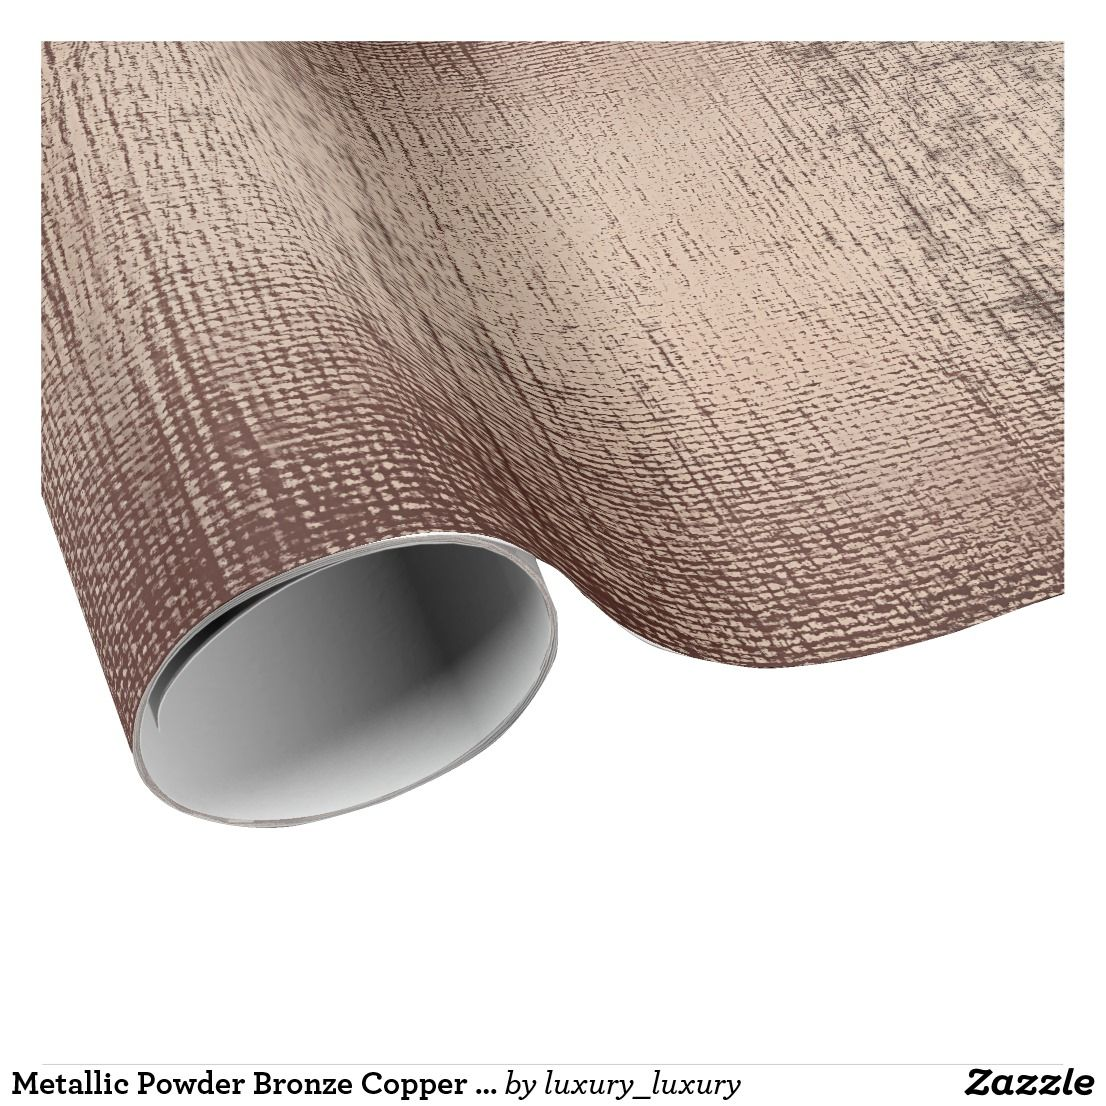 Metallic Powder Bronze Copper Rose Gold Linen Burl Wrapping Paper